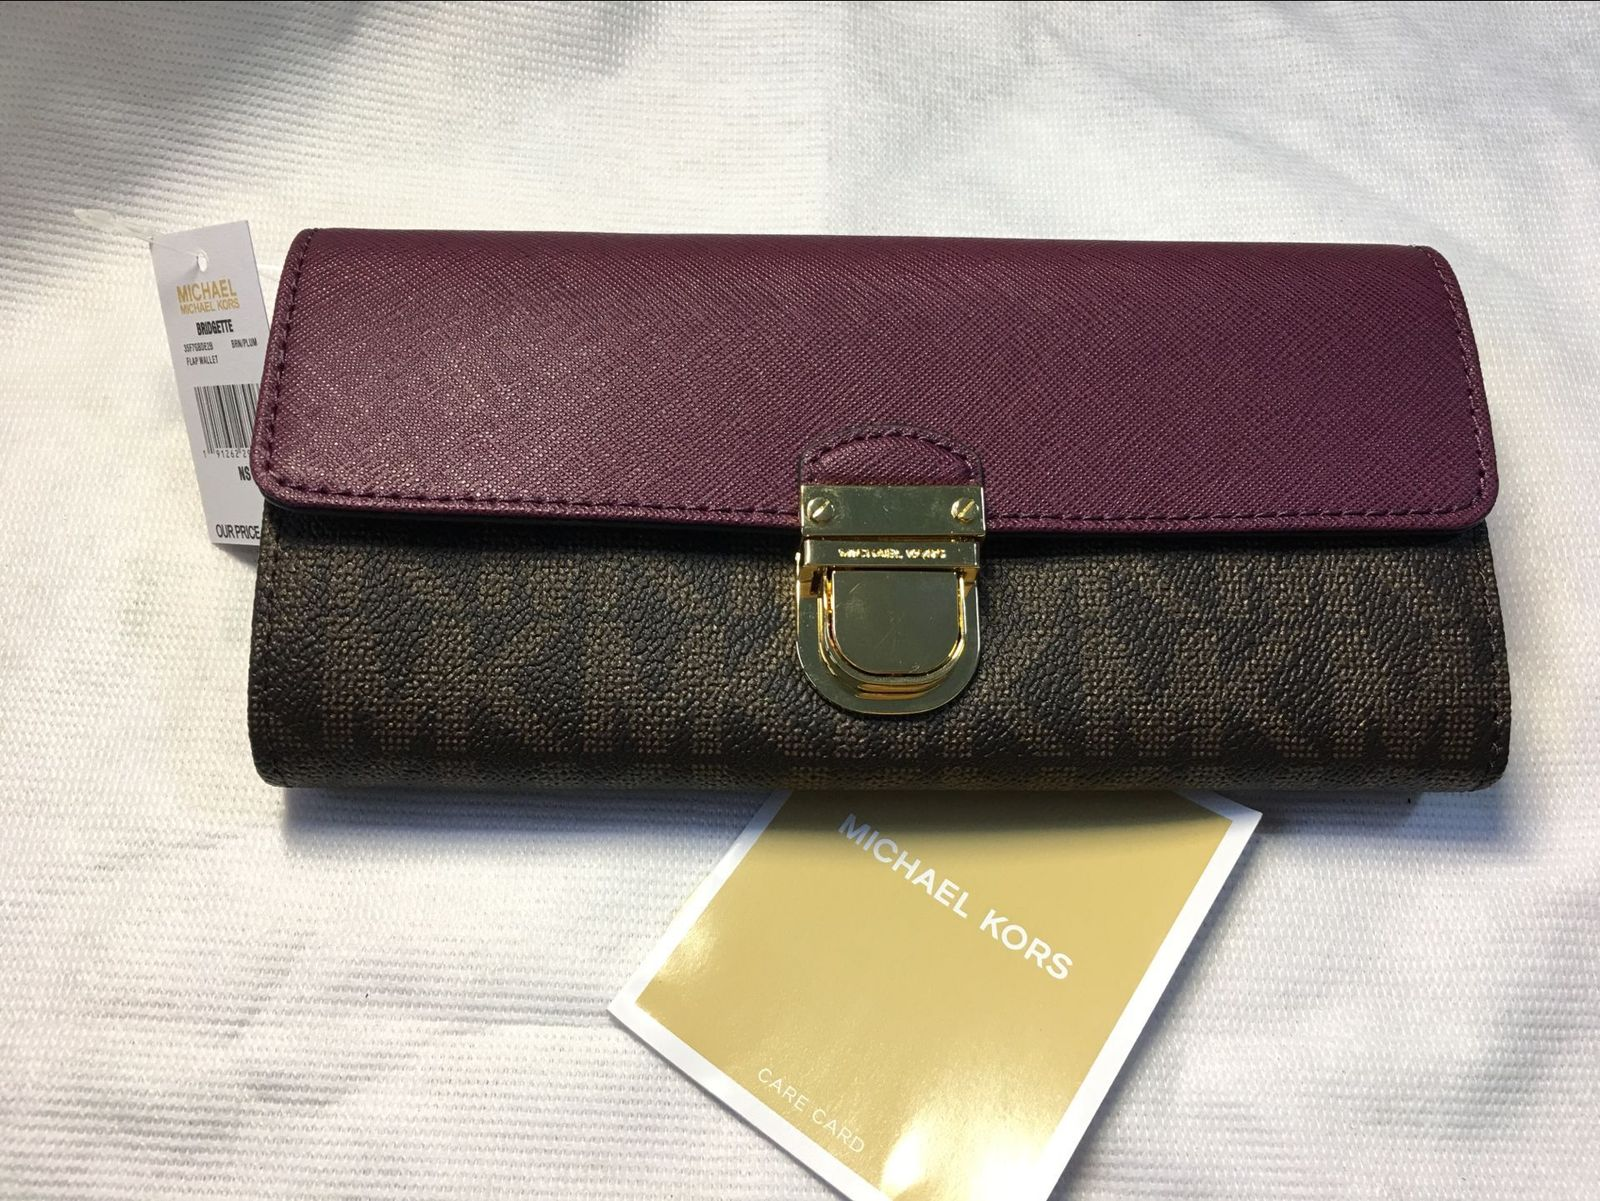 3fa72a1d6546 Authentic Michael Kors Signature PVC and Leather Bridgette Flap Wallet  BRN/PLUM